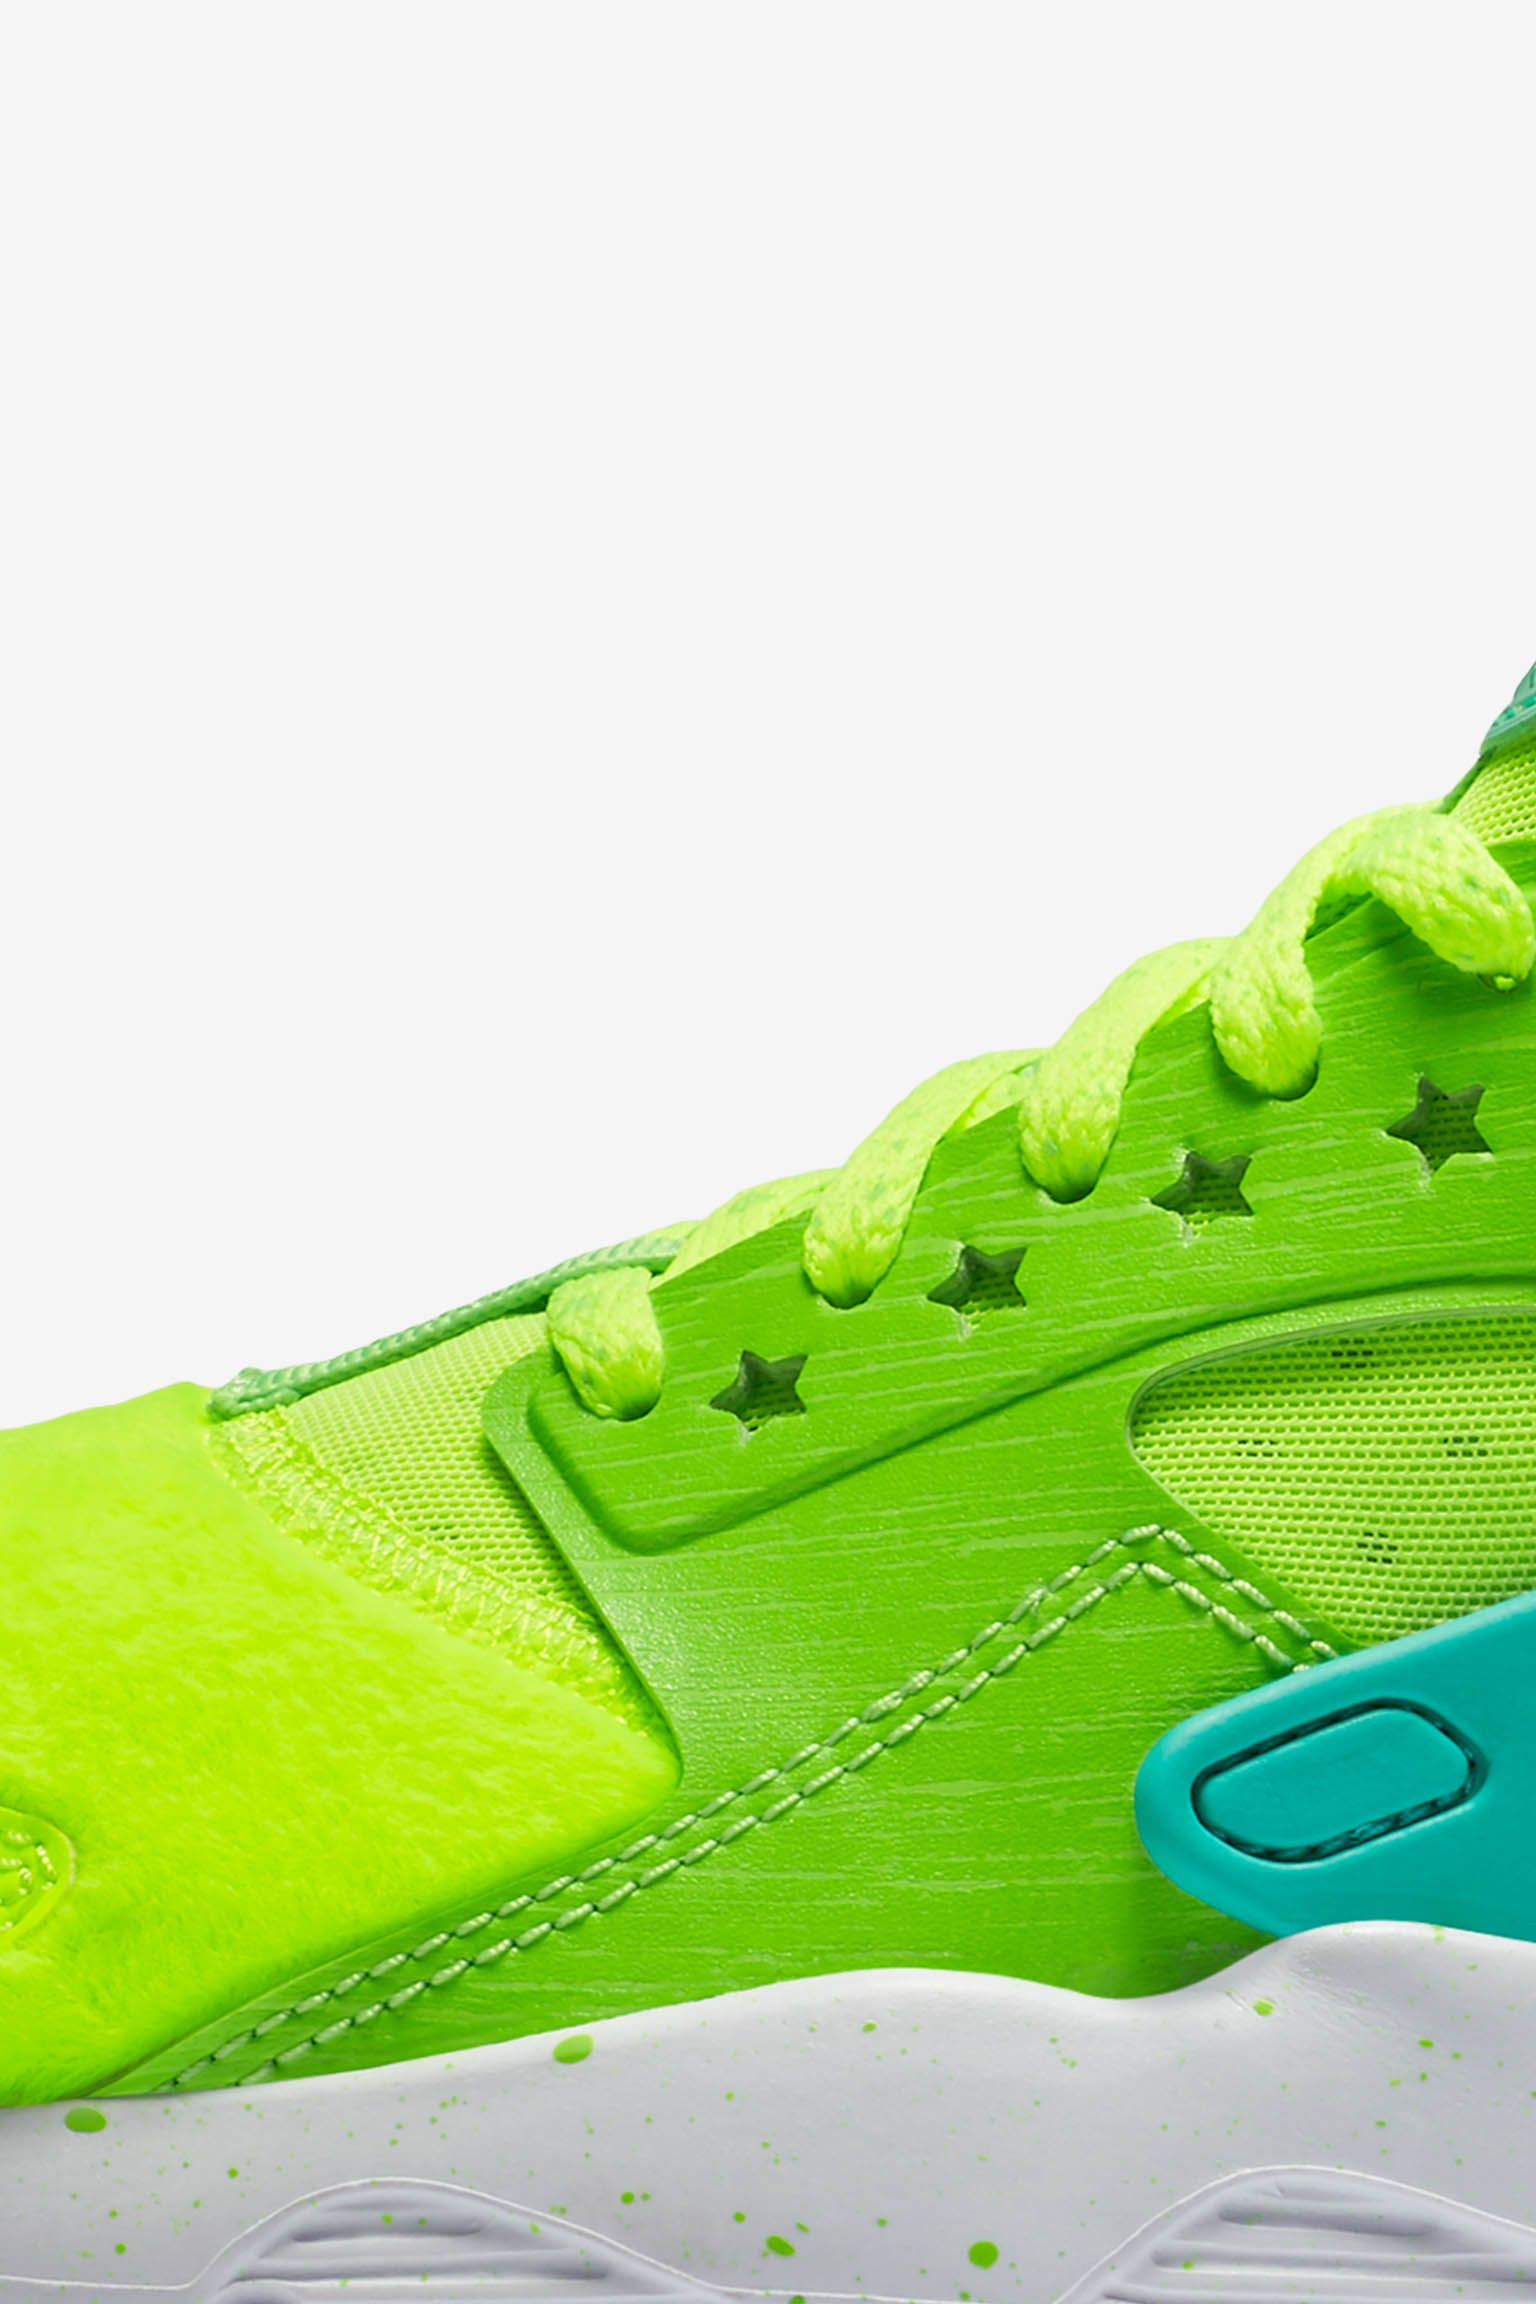 Women's Nike Air Huarache Ultra Doernbecher 'Volt & Electric Green' Release Date